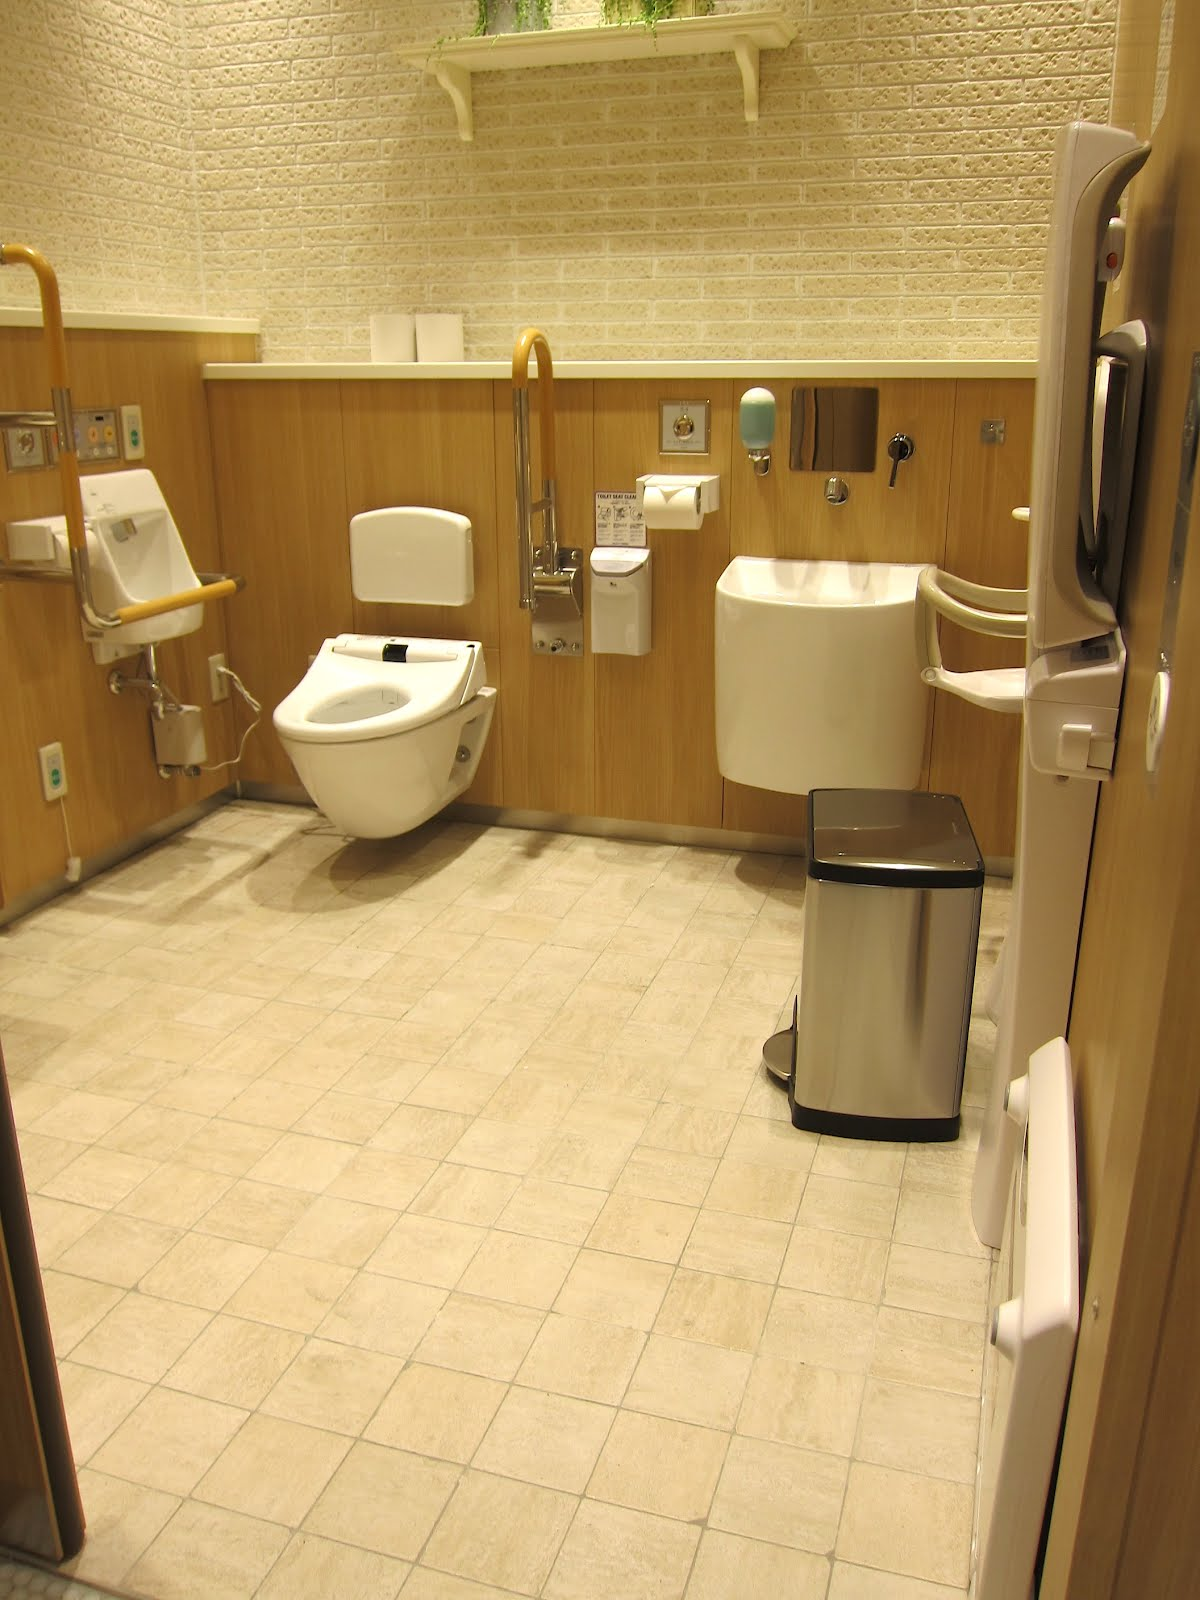 Hello Talalay: Japanese Bathrooms, State Of The (F)art.